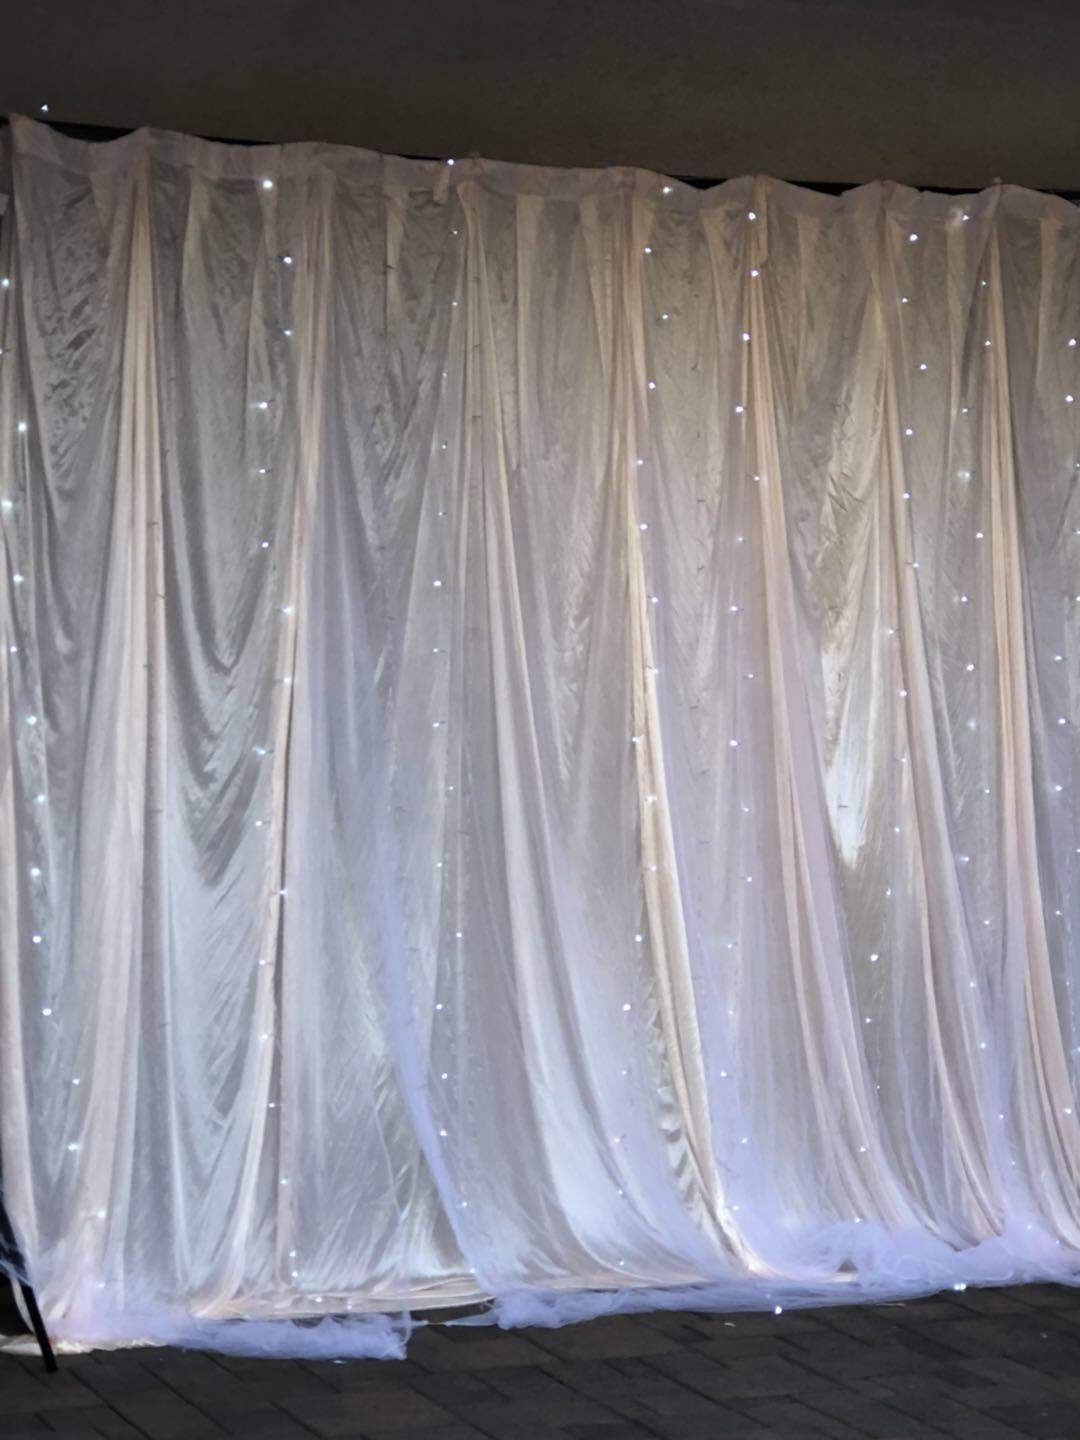 13' Wide x 10' high Indoor Gauze Romantic LED Lights with Double Layers Party Backdrop Window Curtain